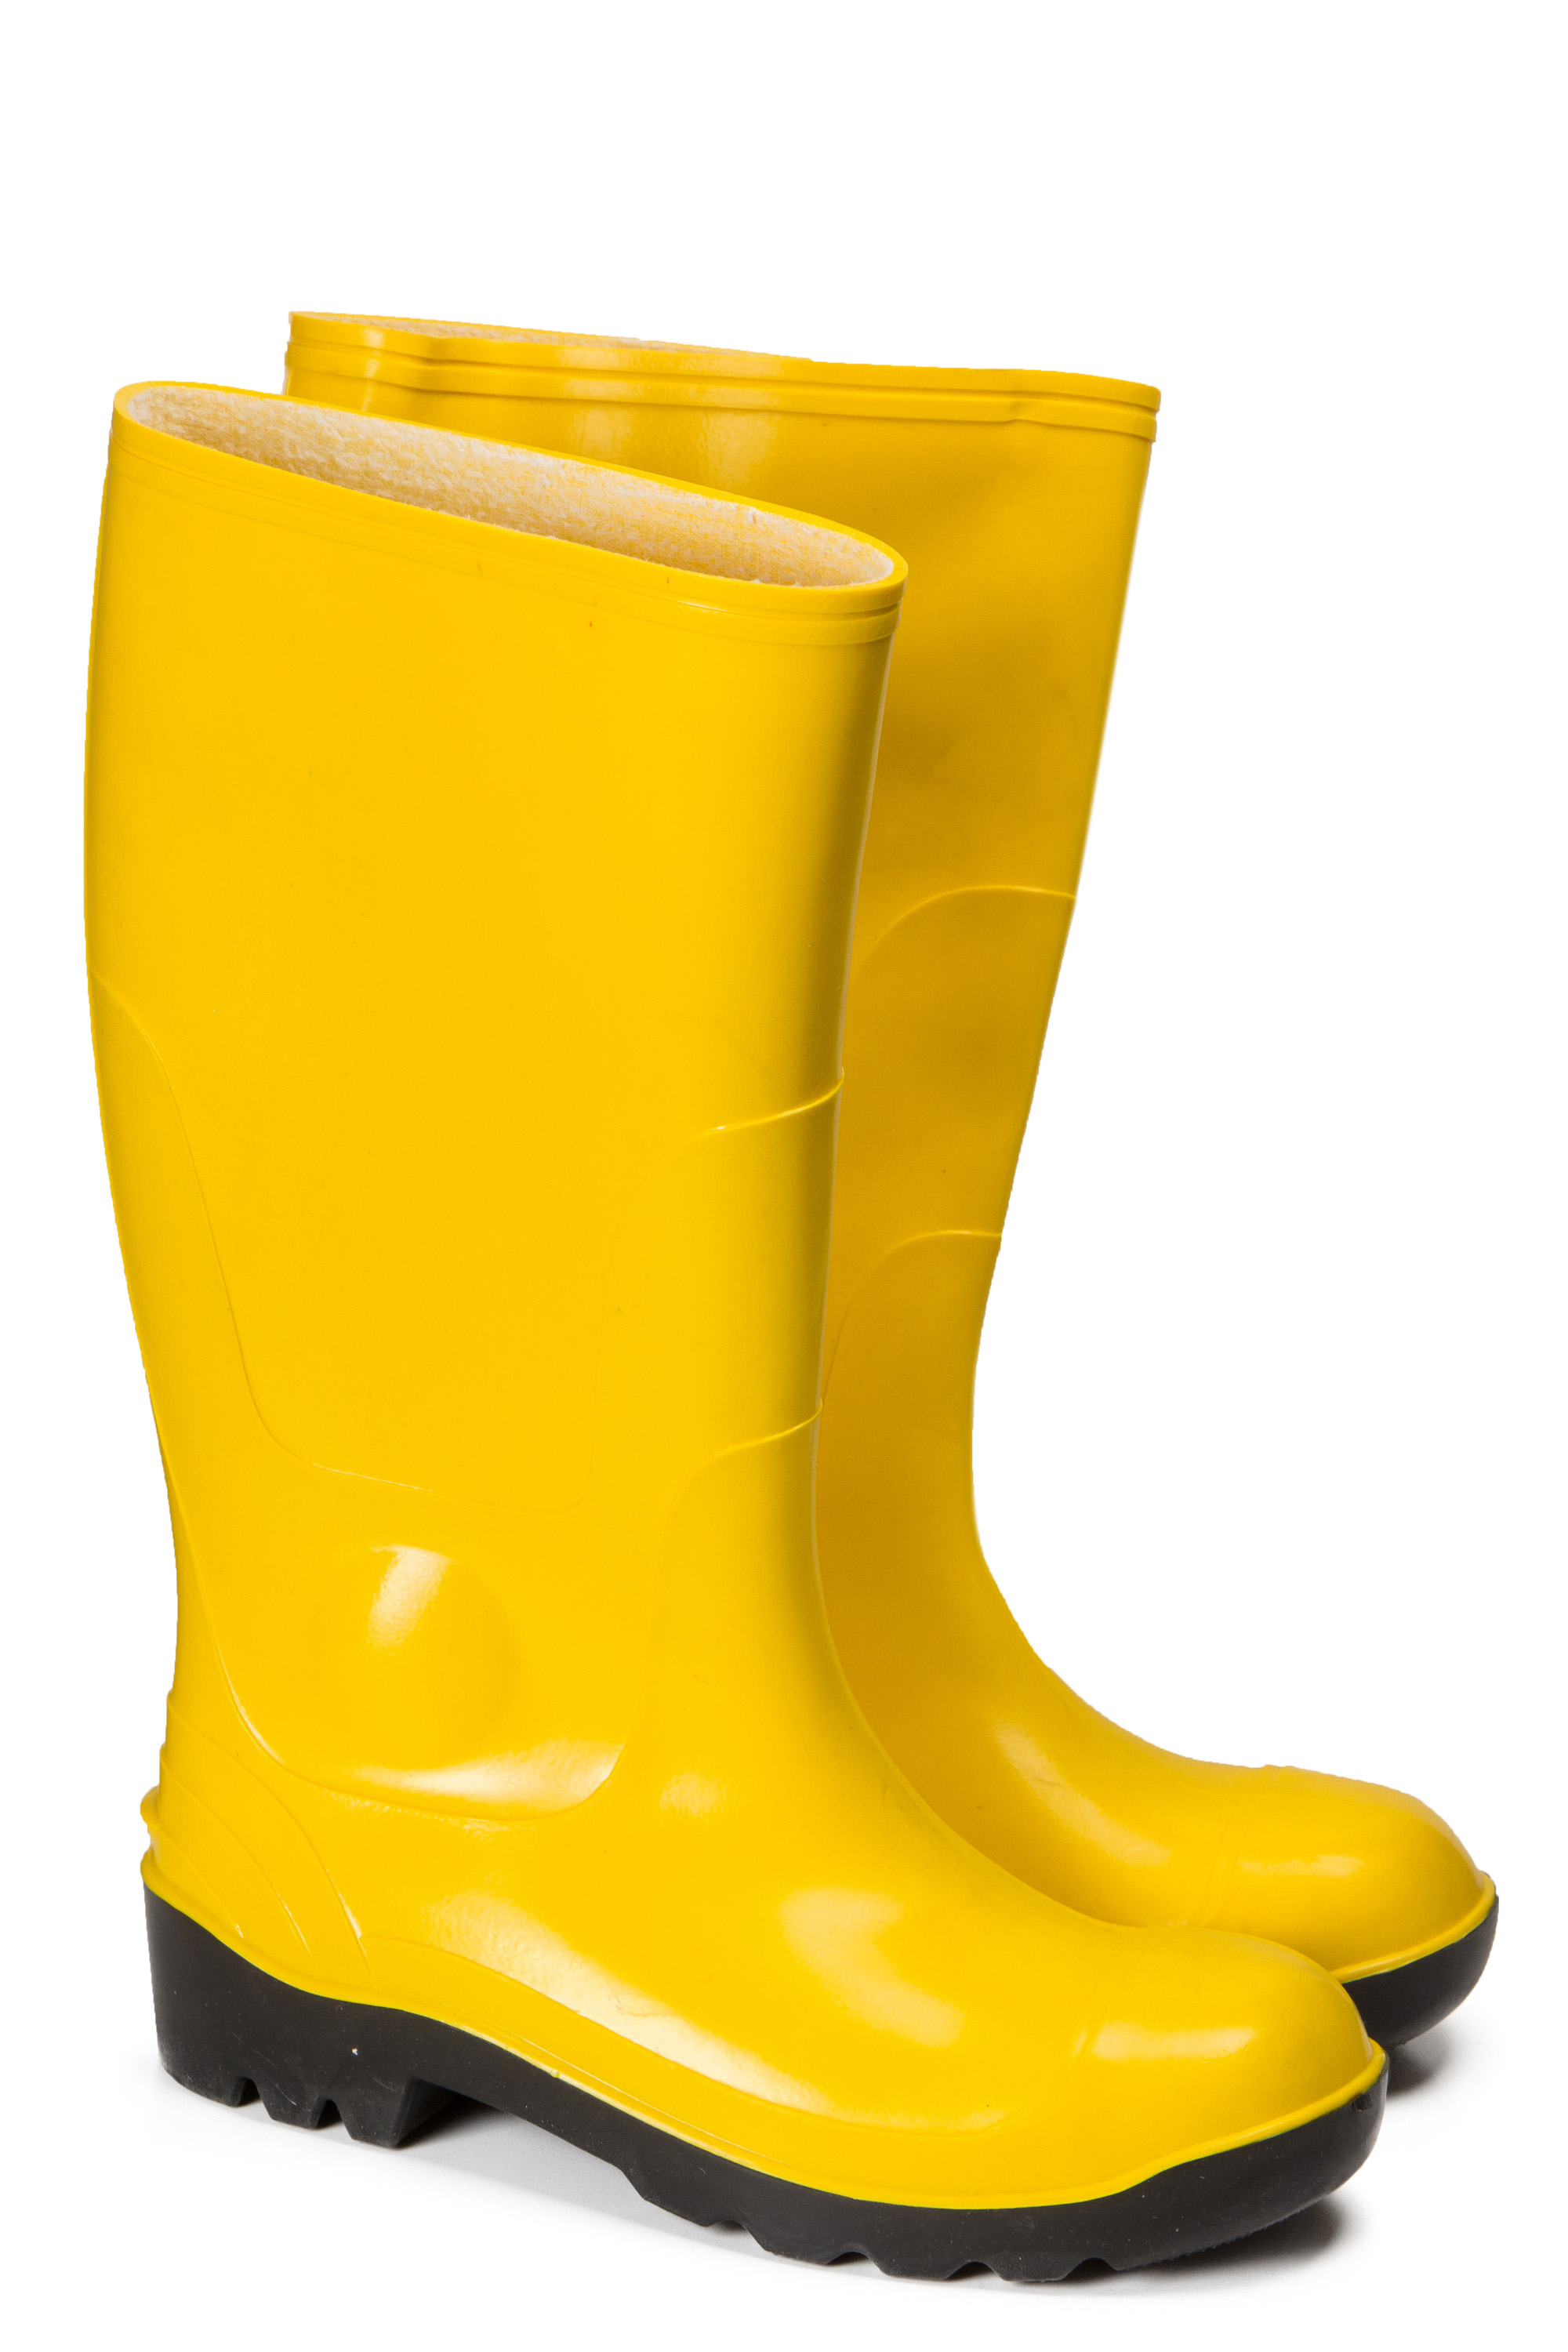 Pair of rain boots - 72 ppi